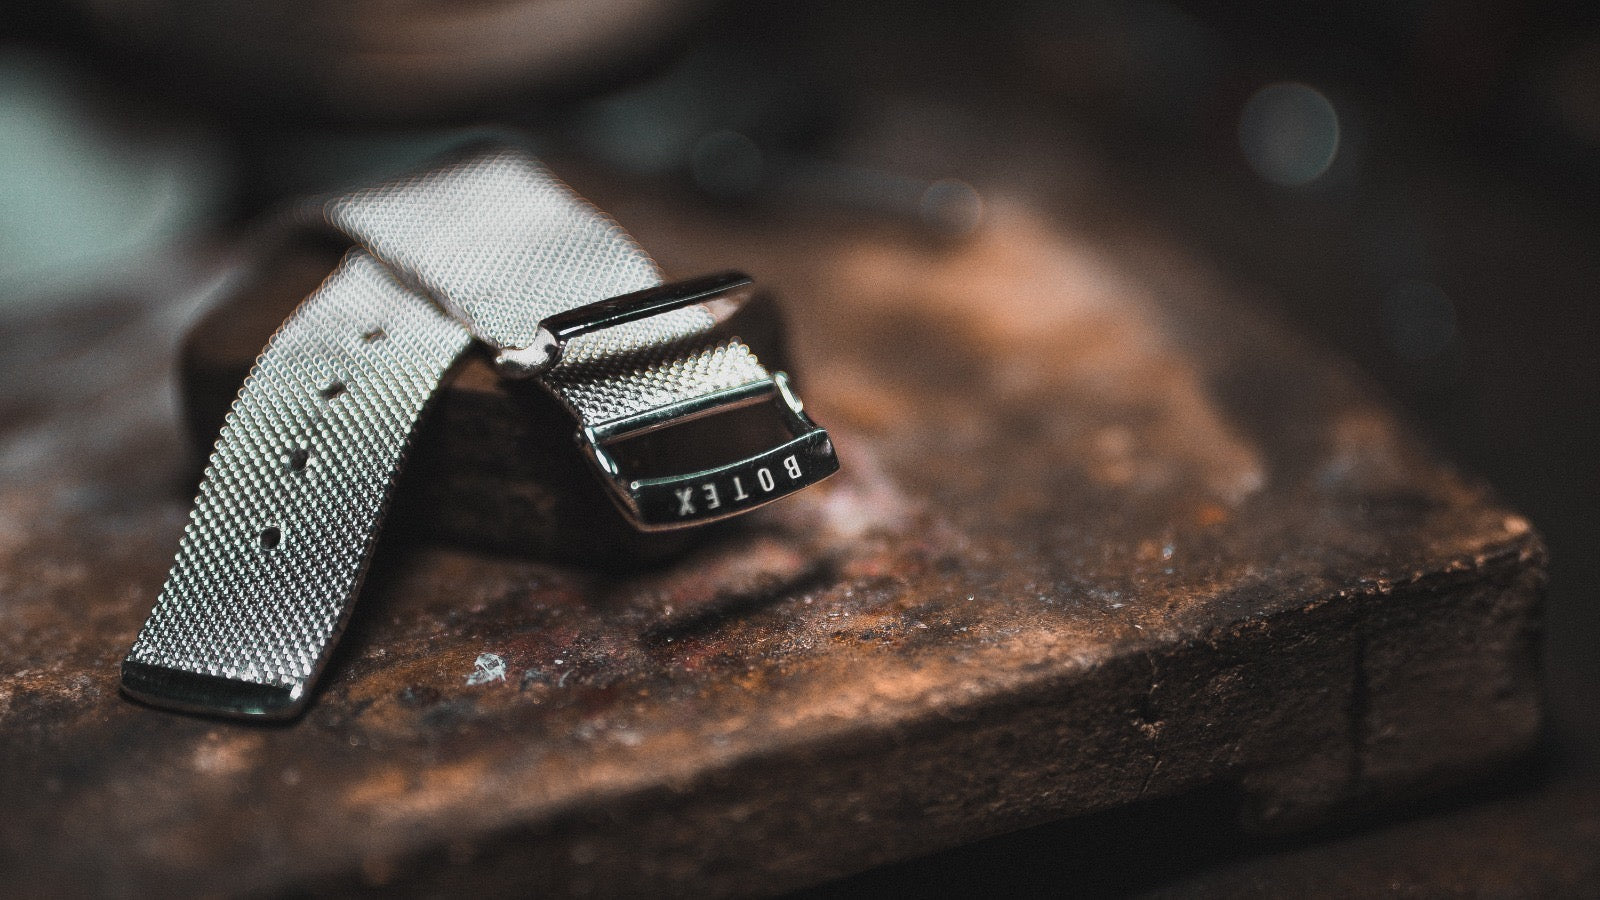 MUSUBI: The High-End Milanese Bracelets for Apple Watch